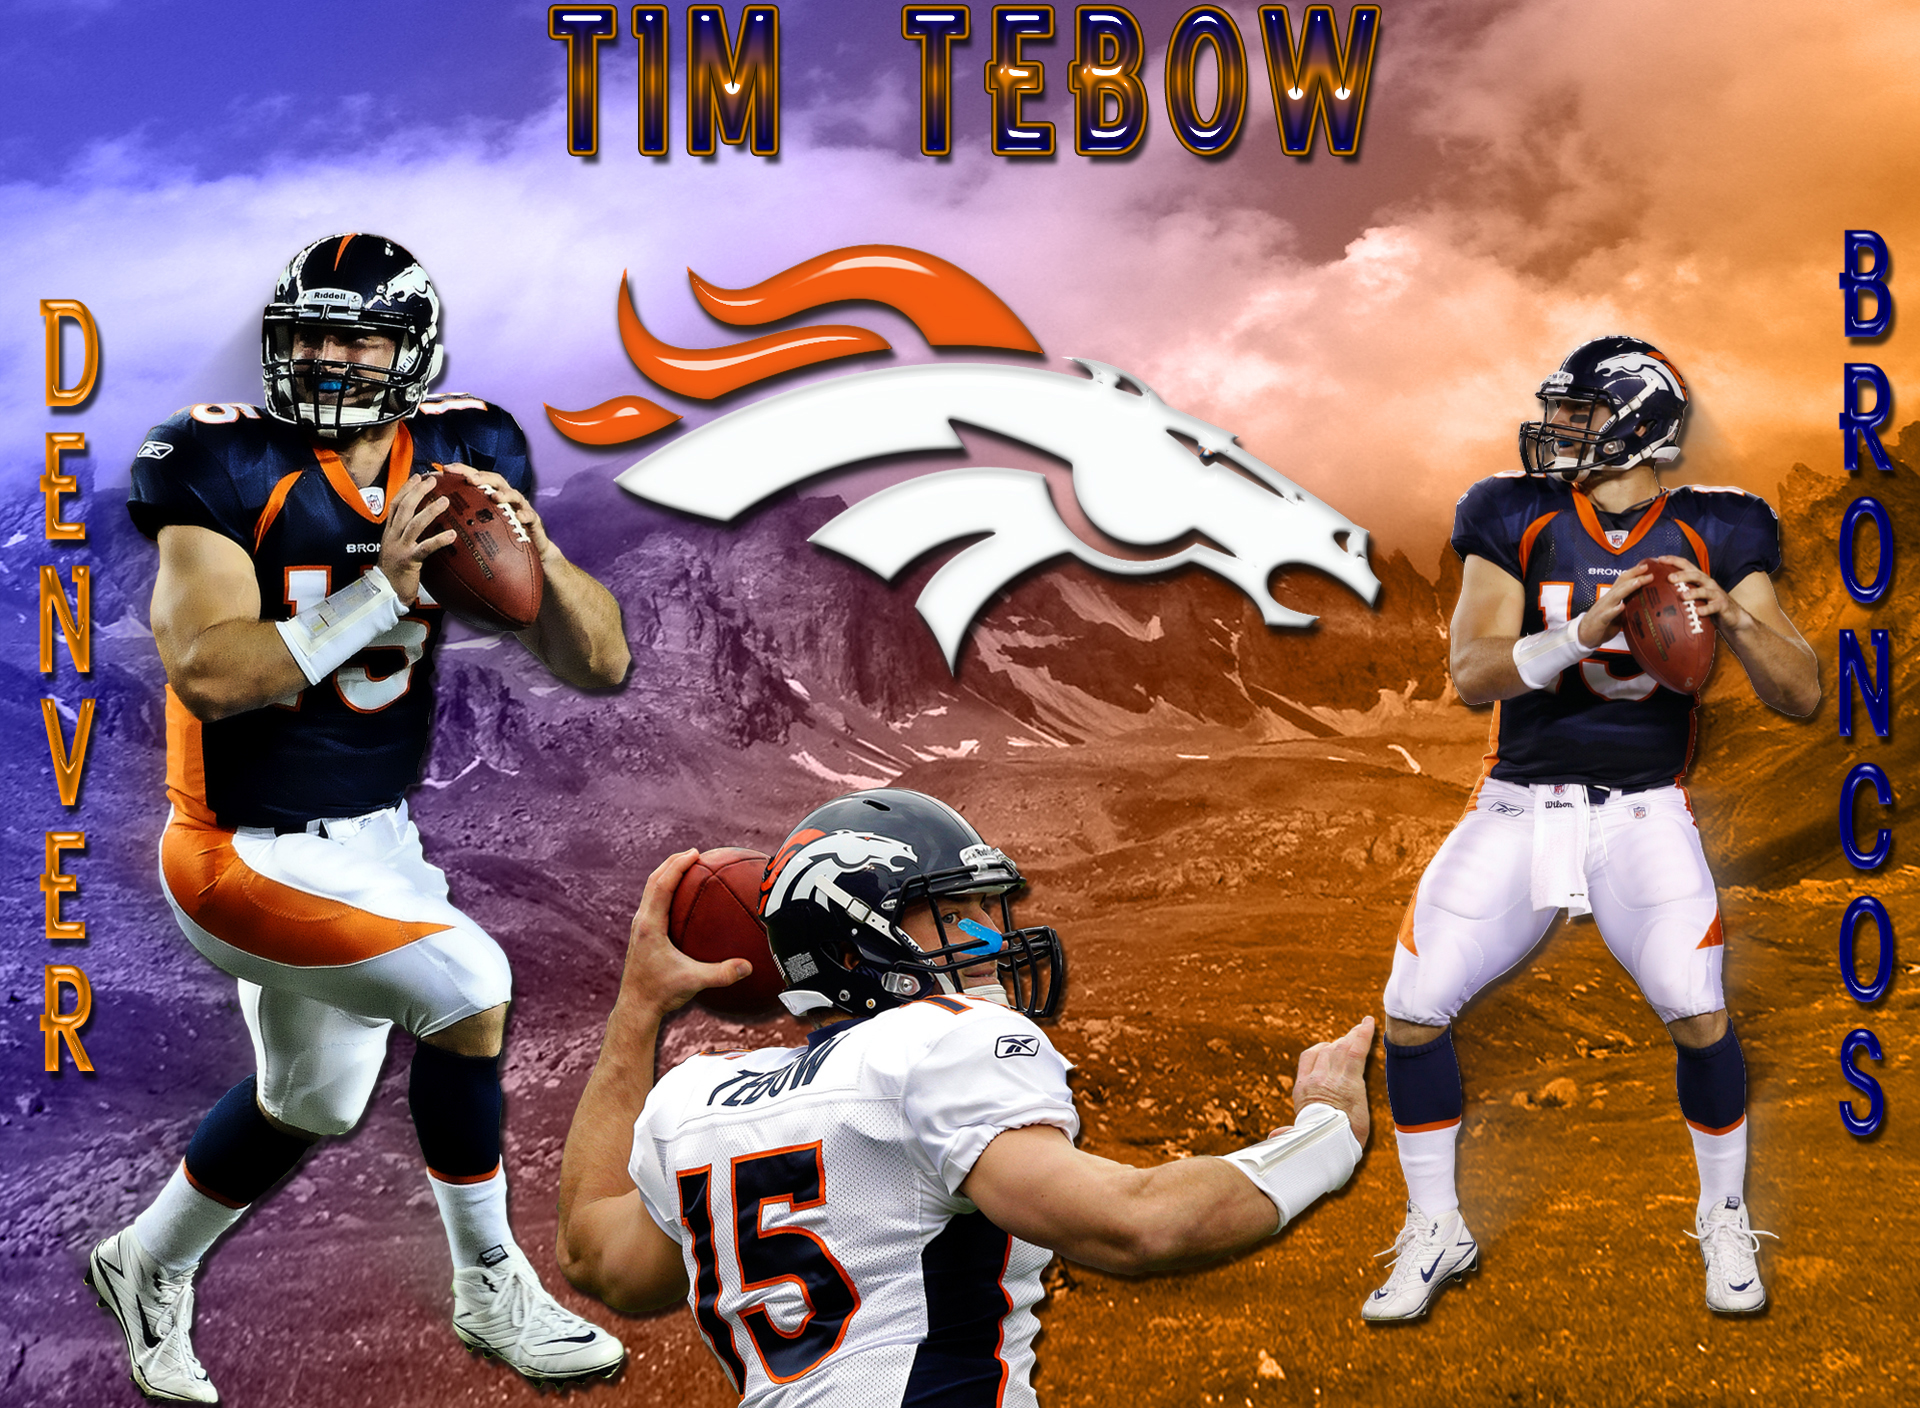 Wallpapers by wicked shadows nfl football wallpapers tim tebow denver broncos wallpaper voltagebd Gallery